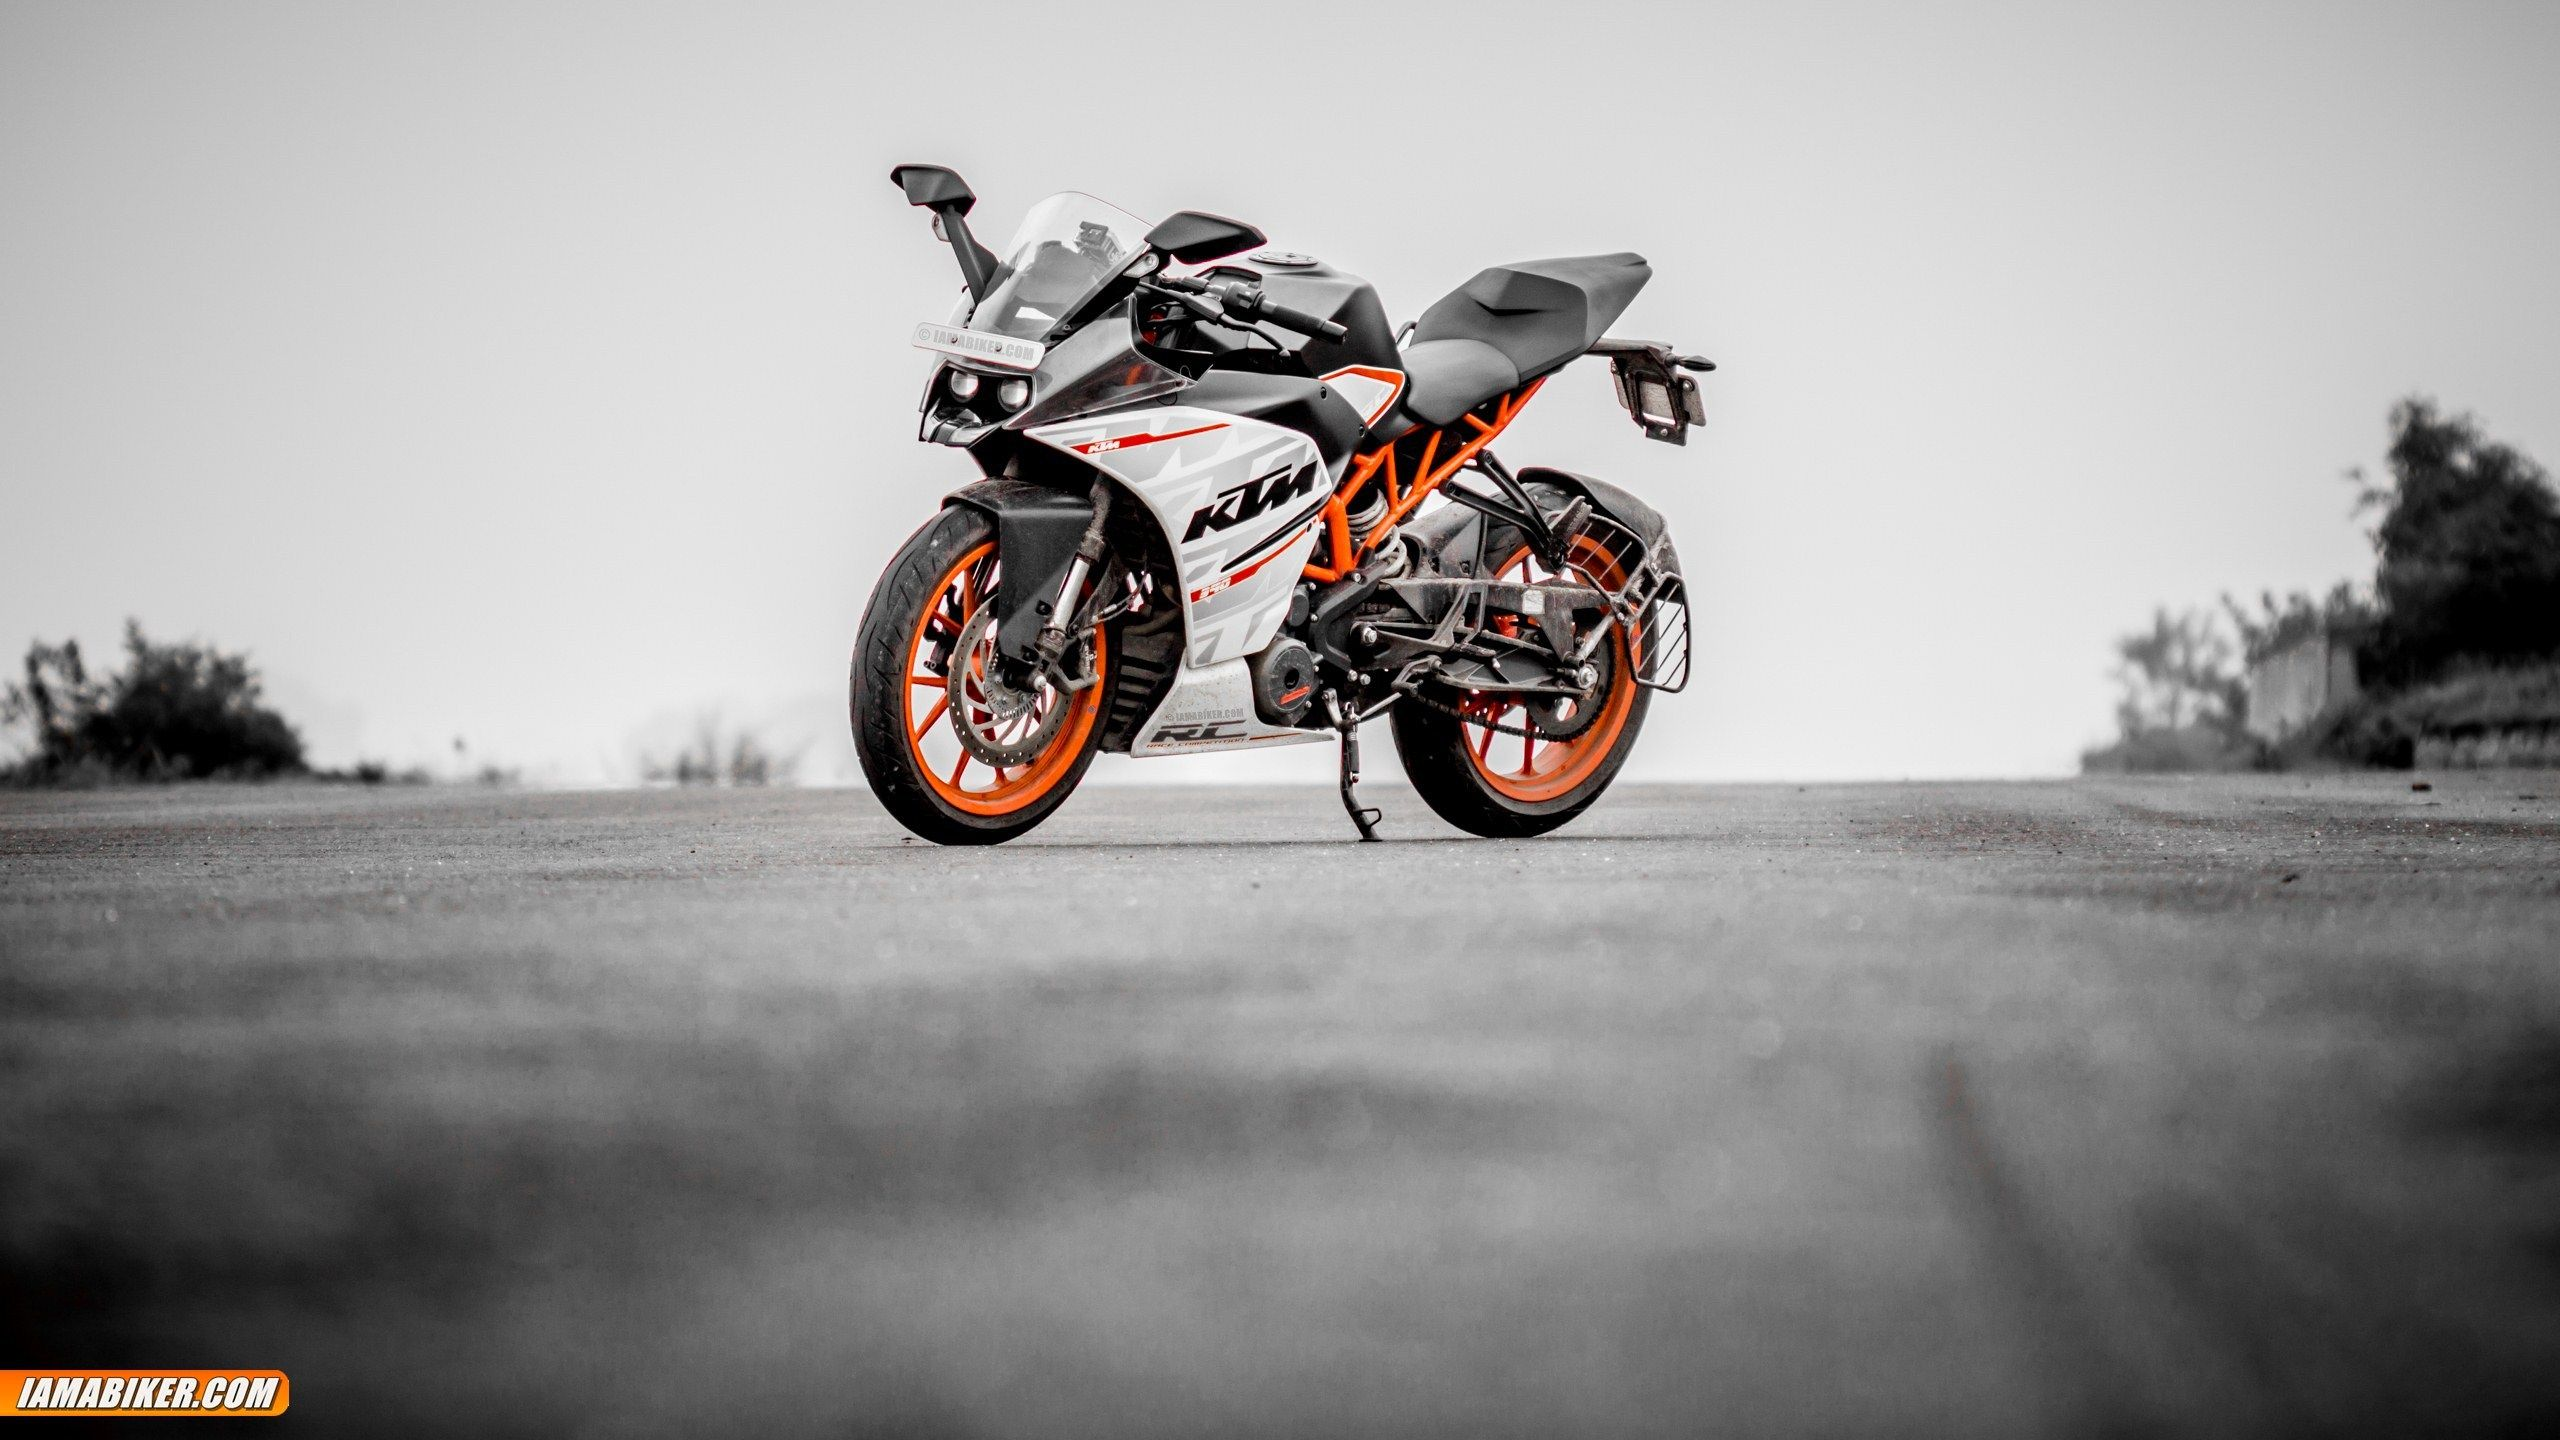 Wallpaper 4k Bike Background Image 19 With Images Motorcycle Wallpaper Ktm Rc Motorcycle Illustration